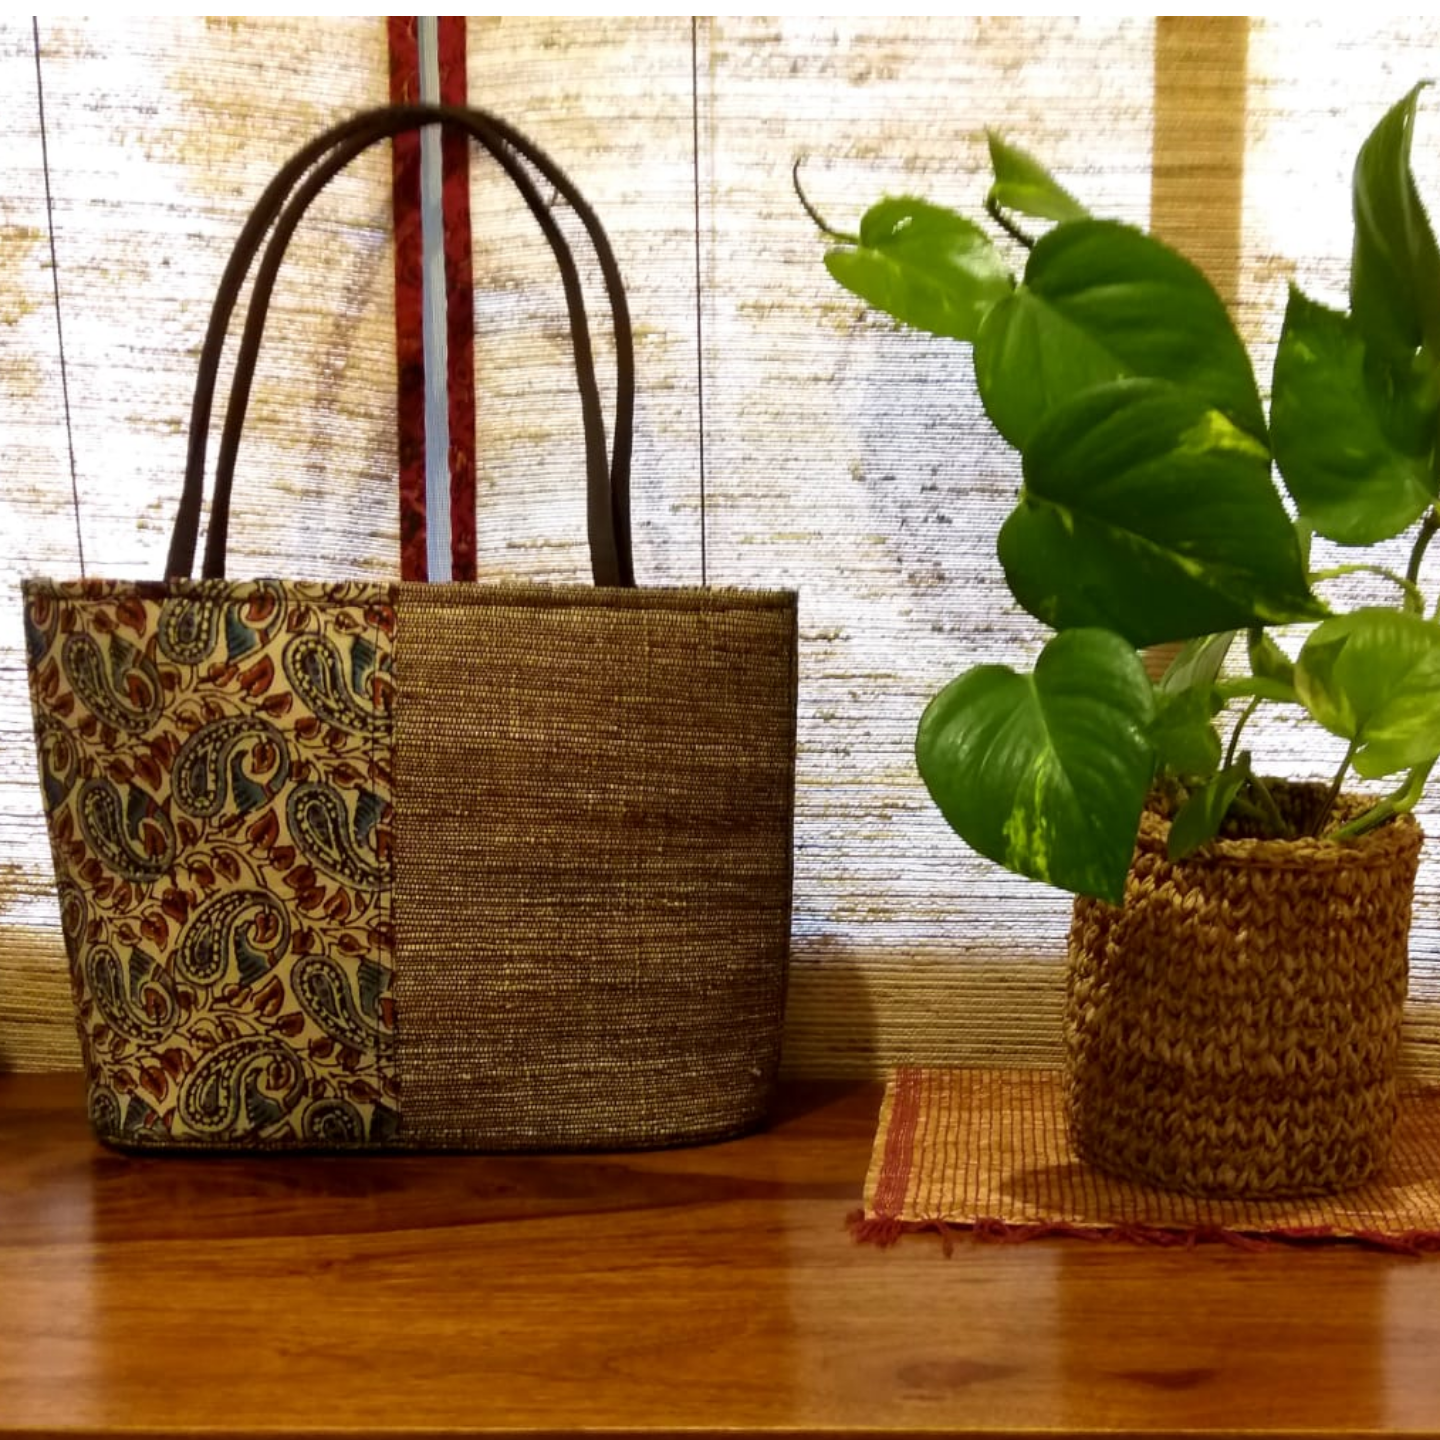 Subtle & Stylish Tote in Banana Fibre